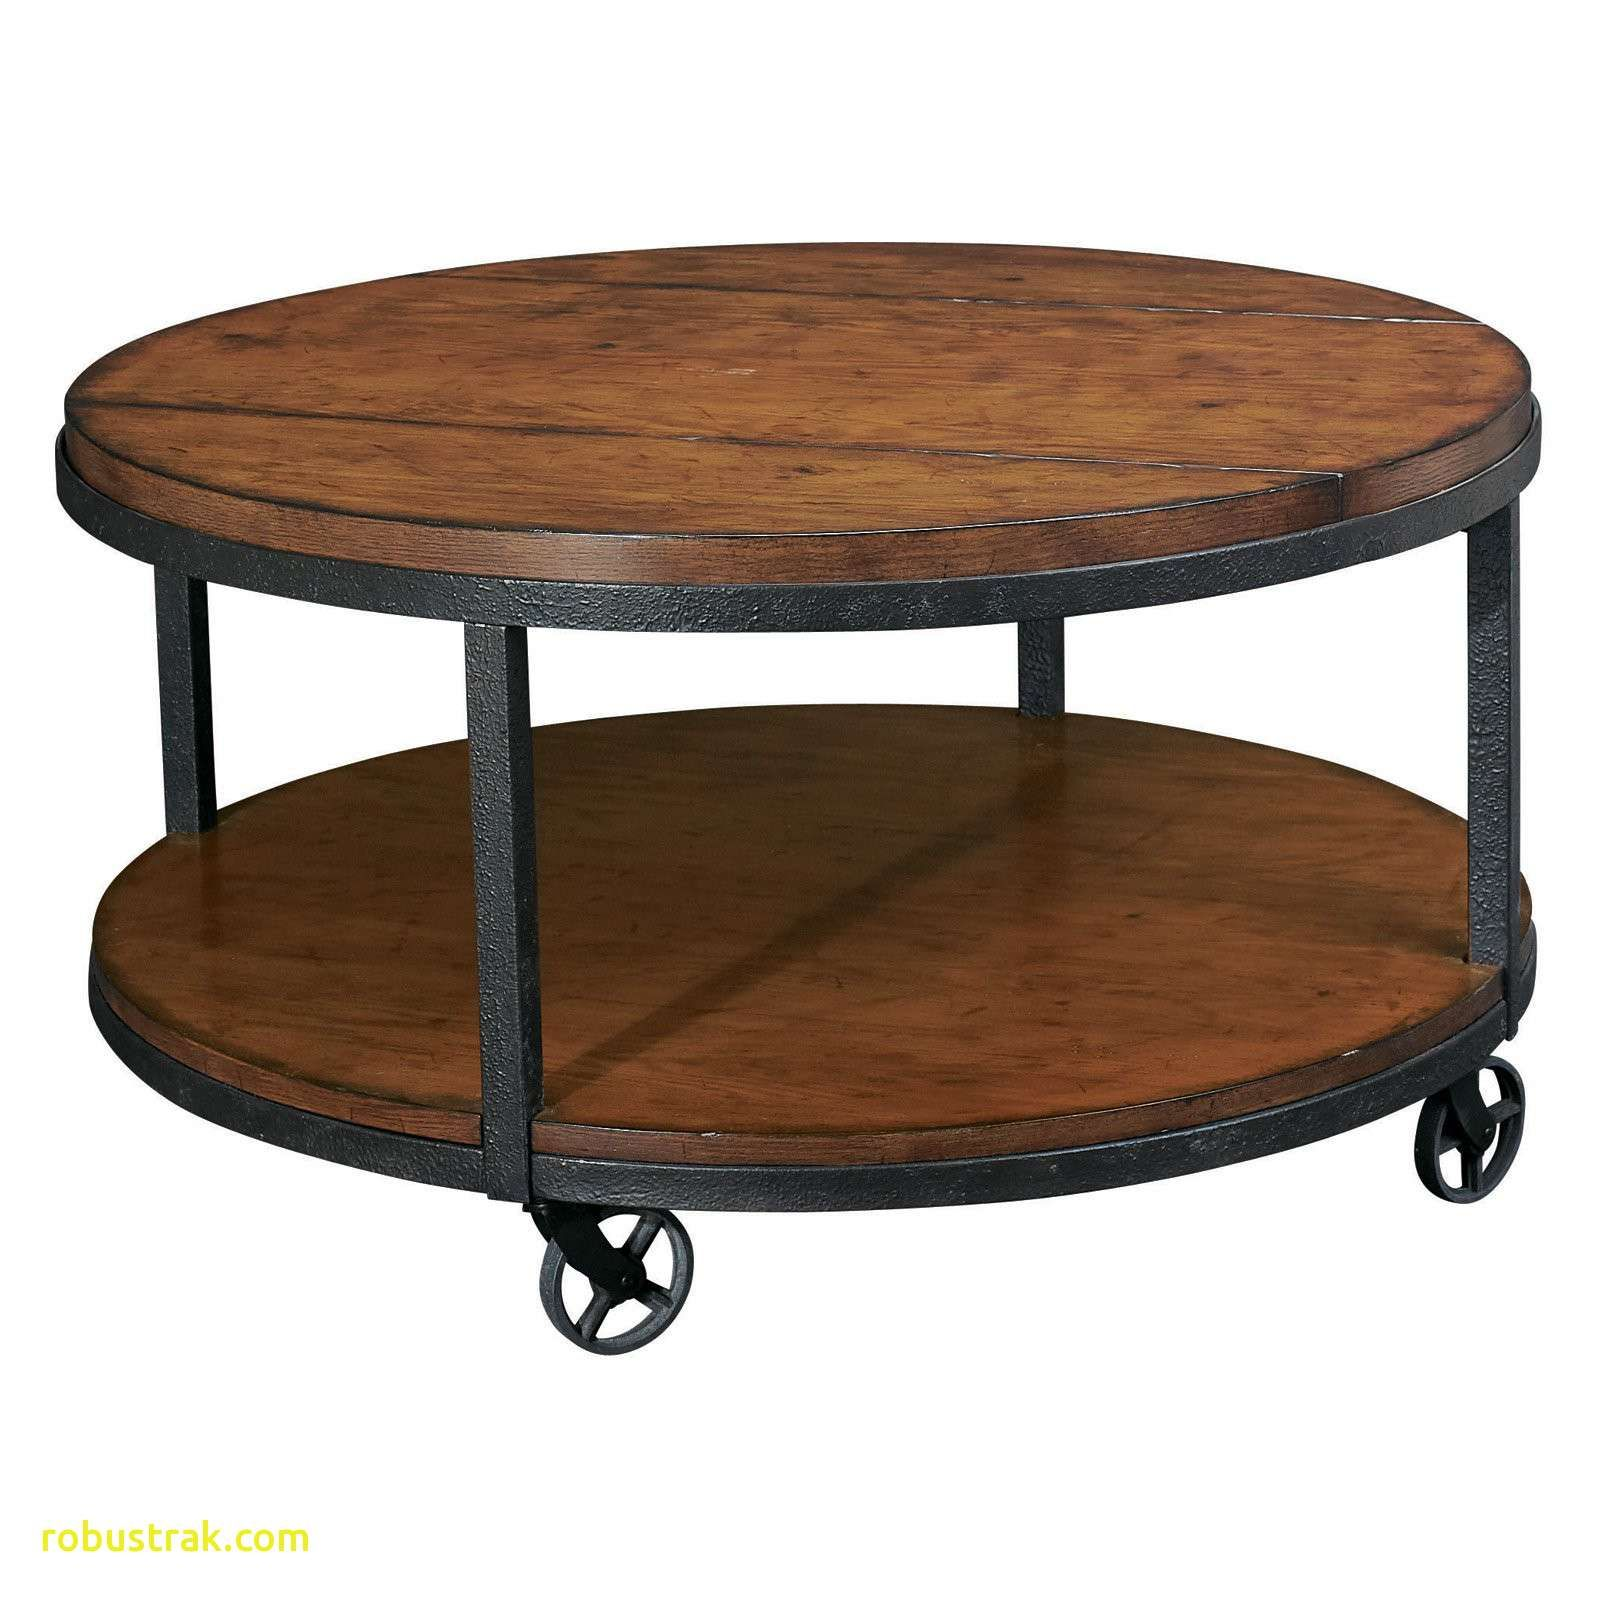 Industrial Coffee Tables For Sale Rushing To Get A Coffee Table